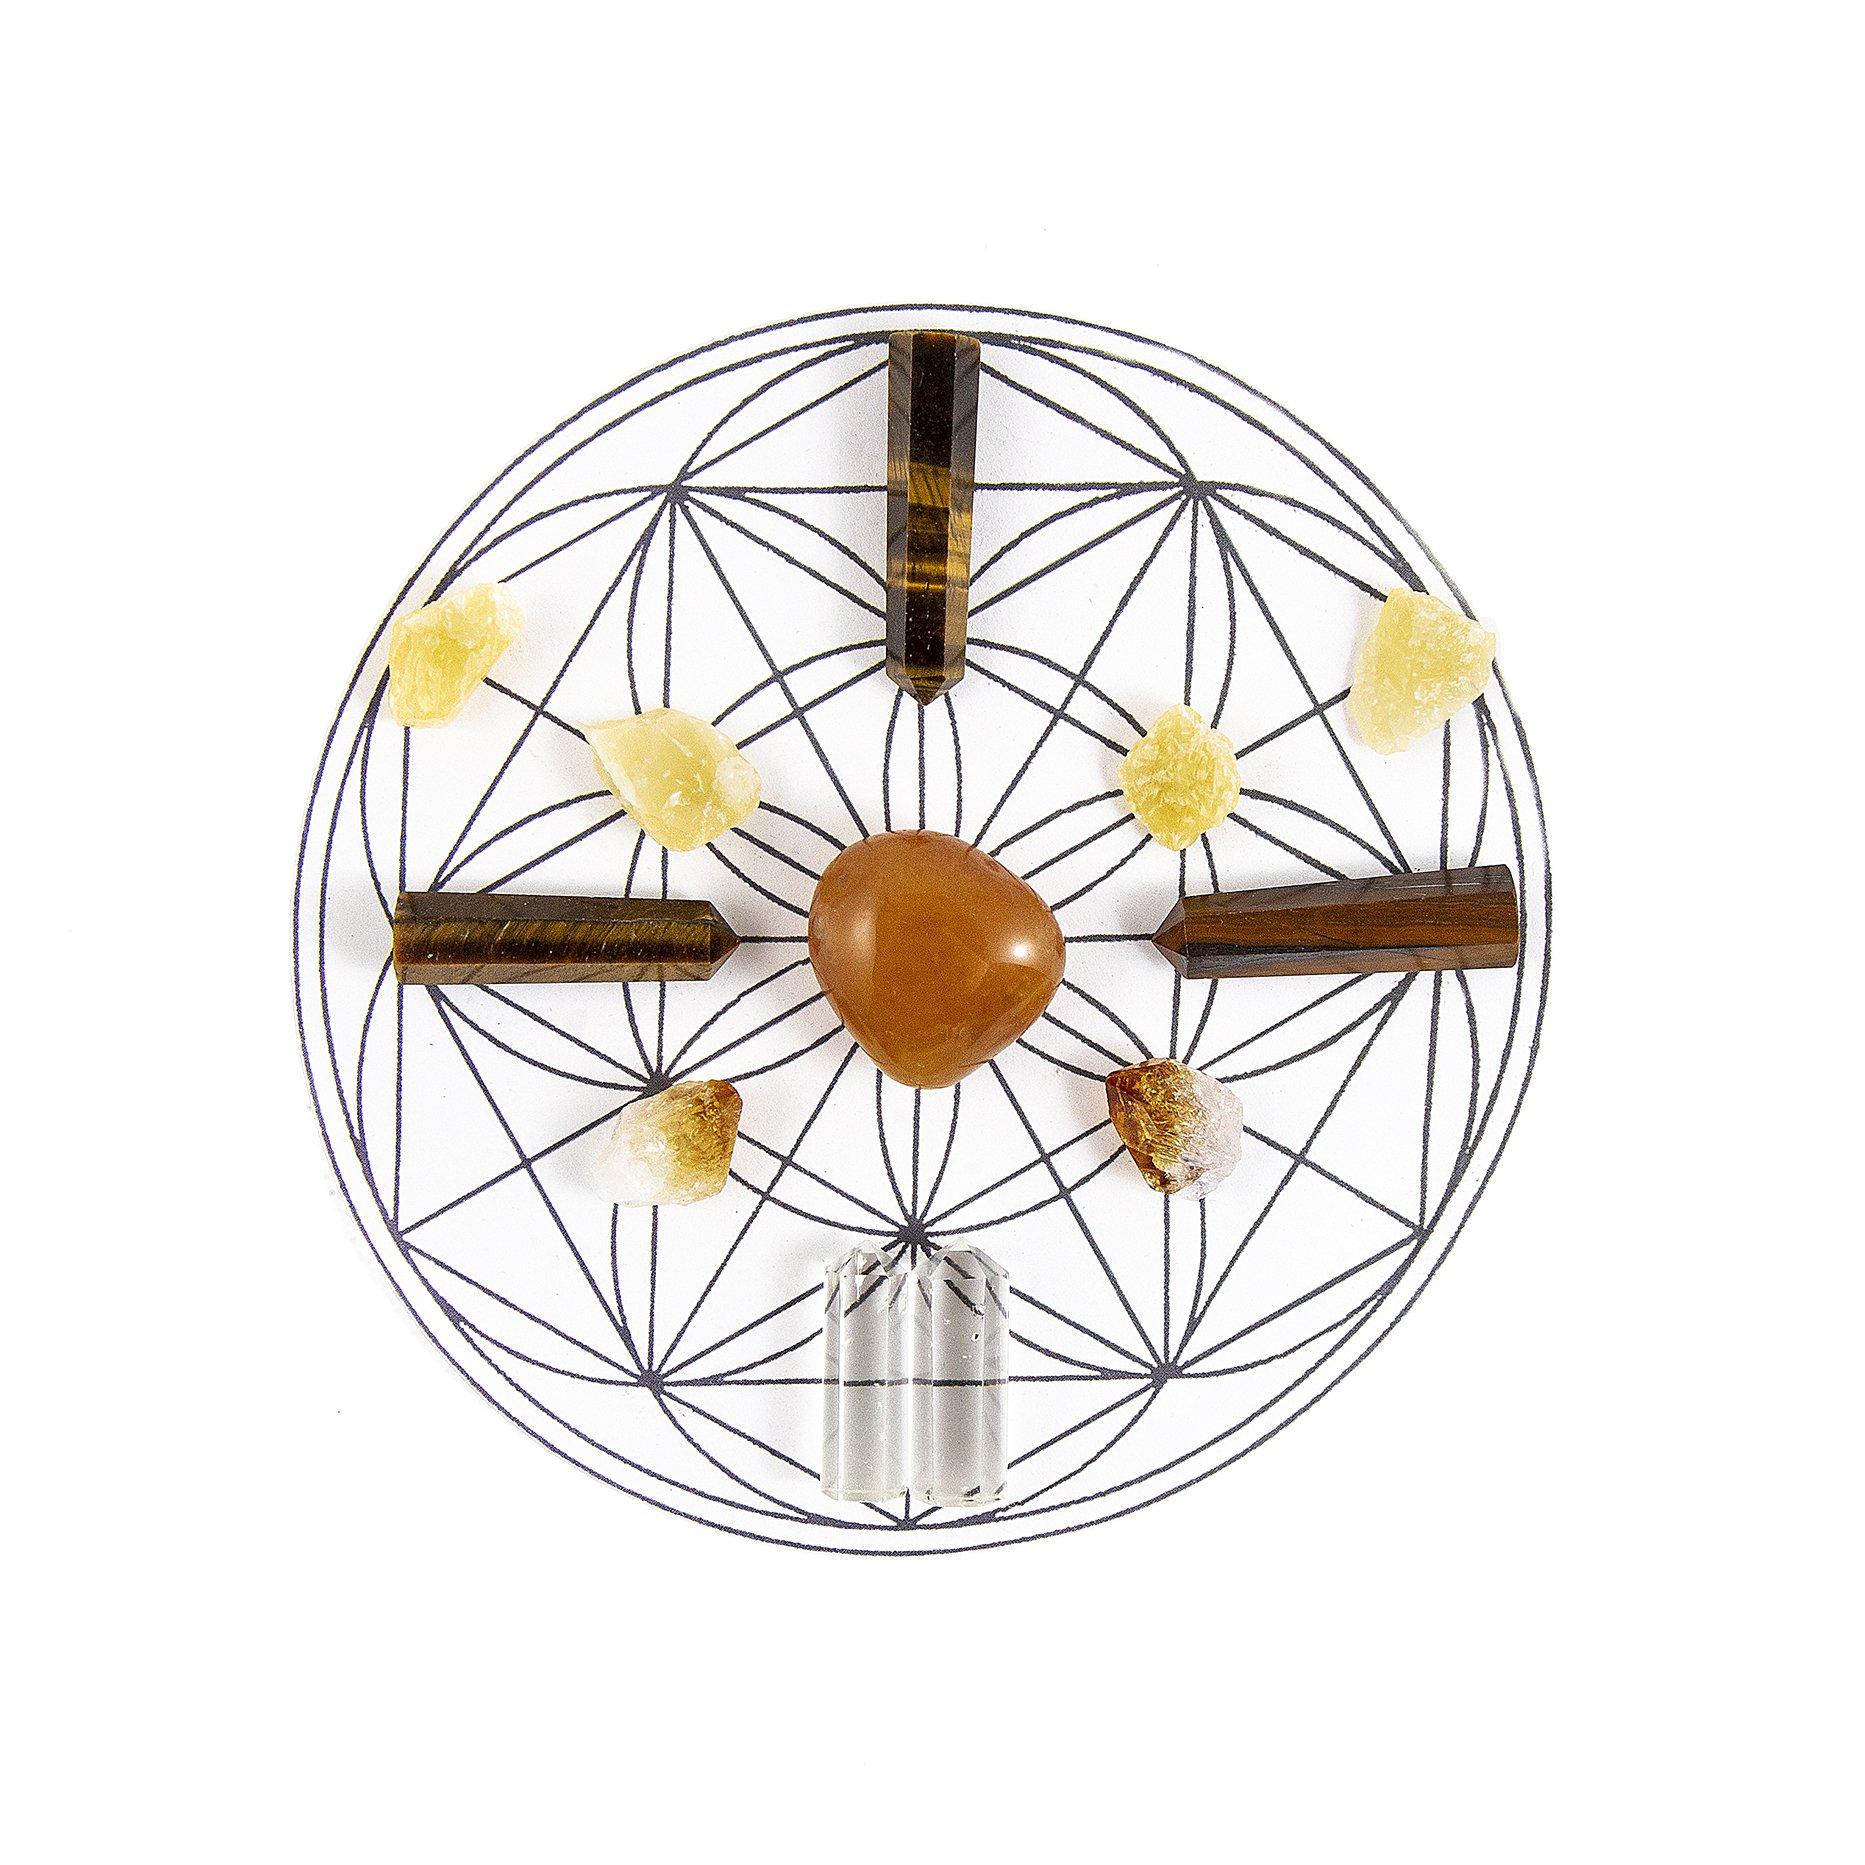 Beverly Oaks ENERGY INFUSED Healing Crystals Grid - CREATIVITY AND MOTIVATION Gemstone Gridding Set - Featuring Carnelian, Tiger Eye, Citrine, Clear Quartz, and Orange Calcite